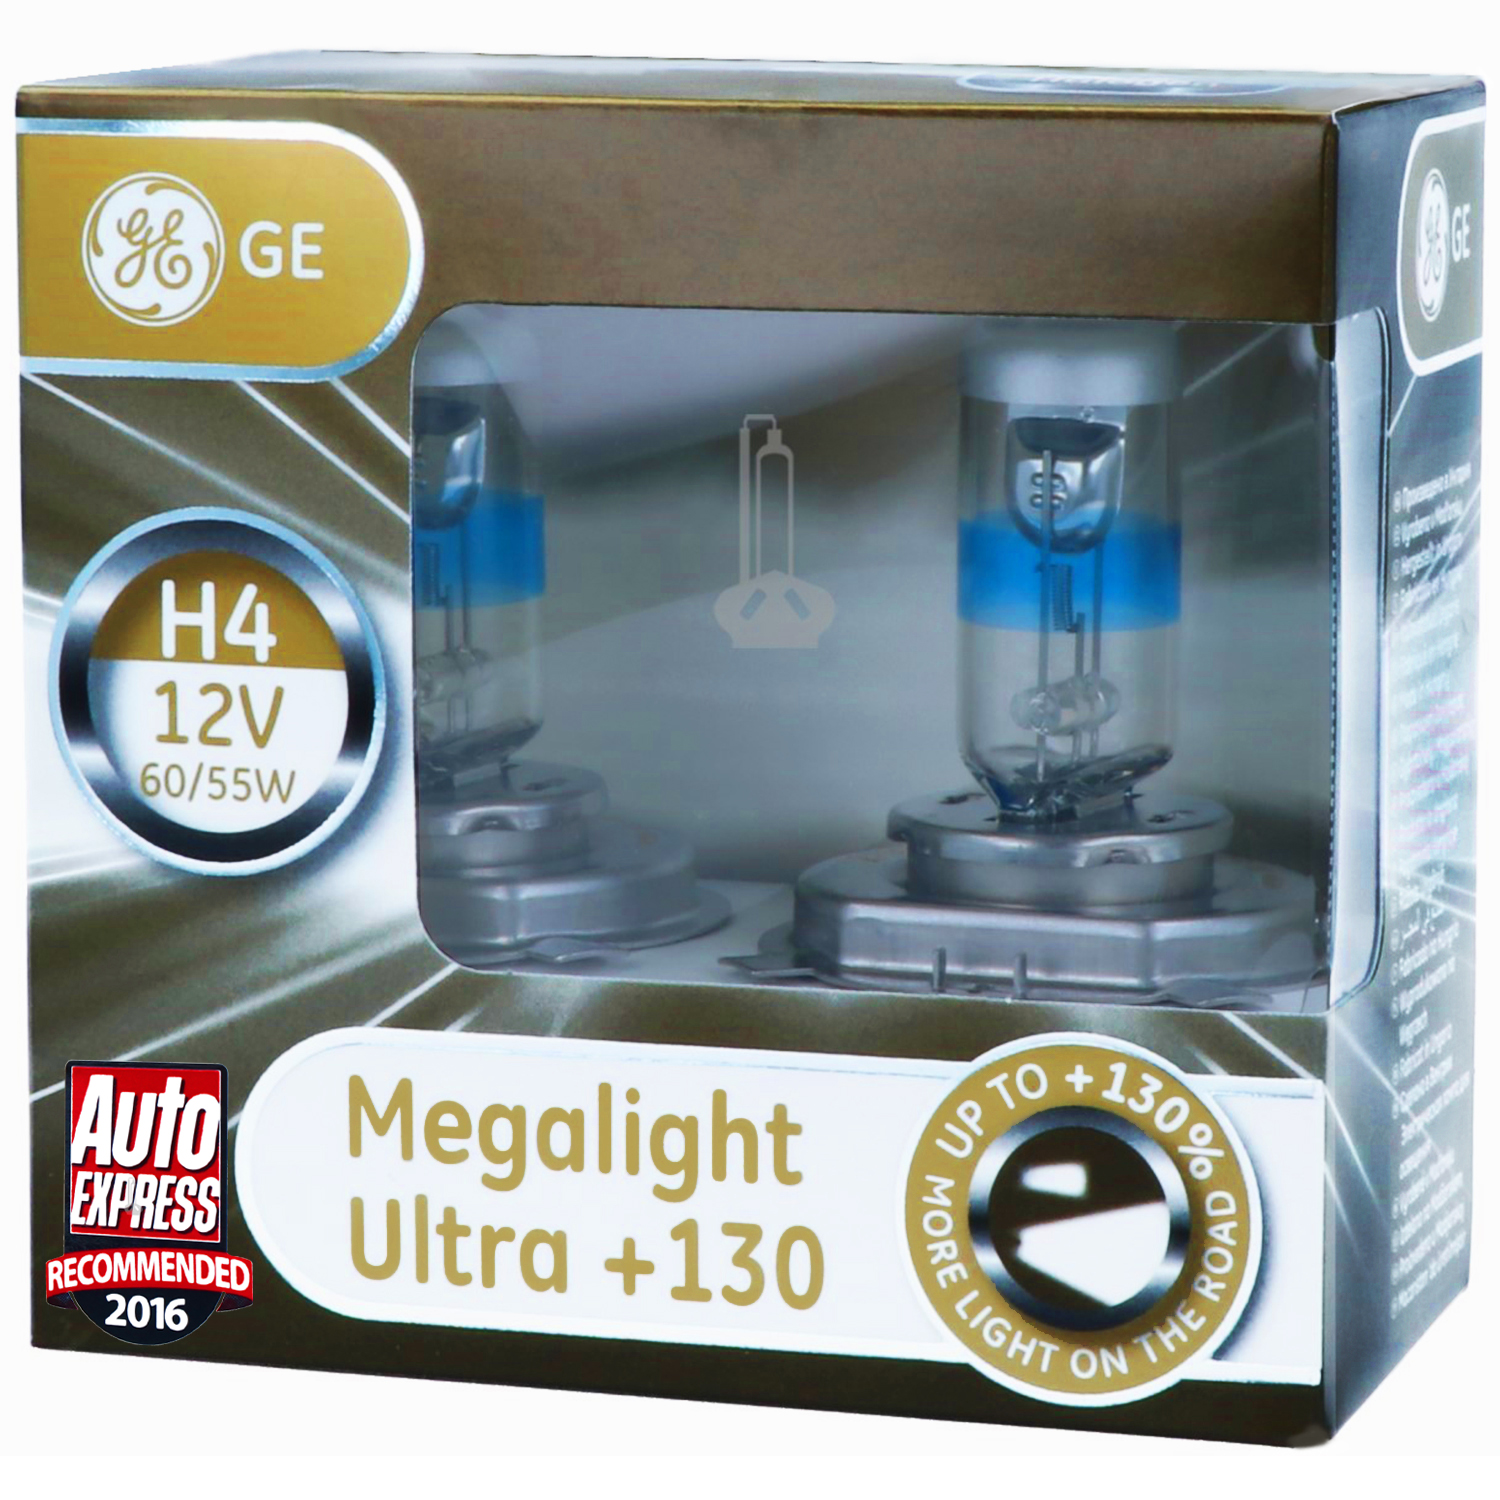 GE Lighting Megalight Ultra +130% mehr Licht